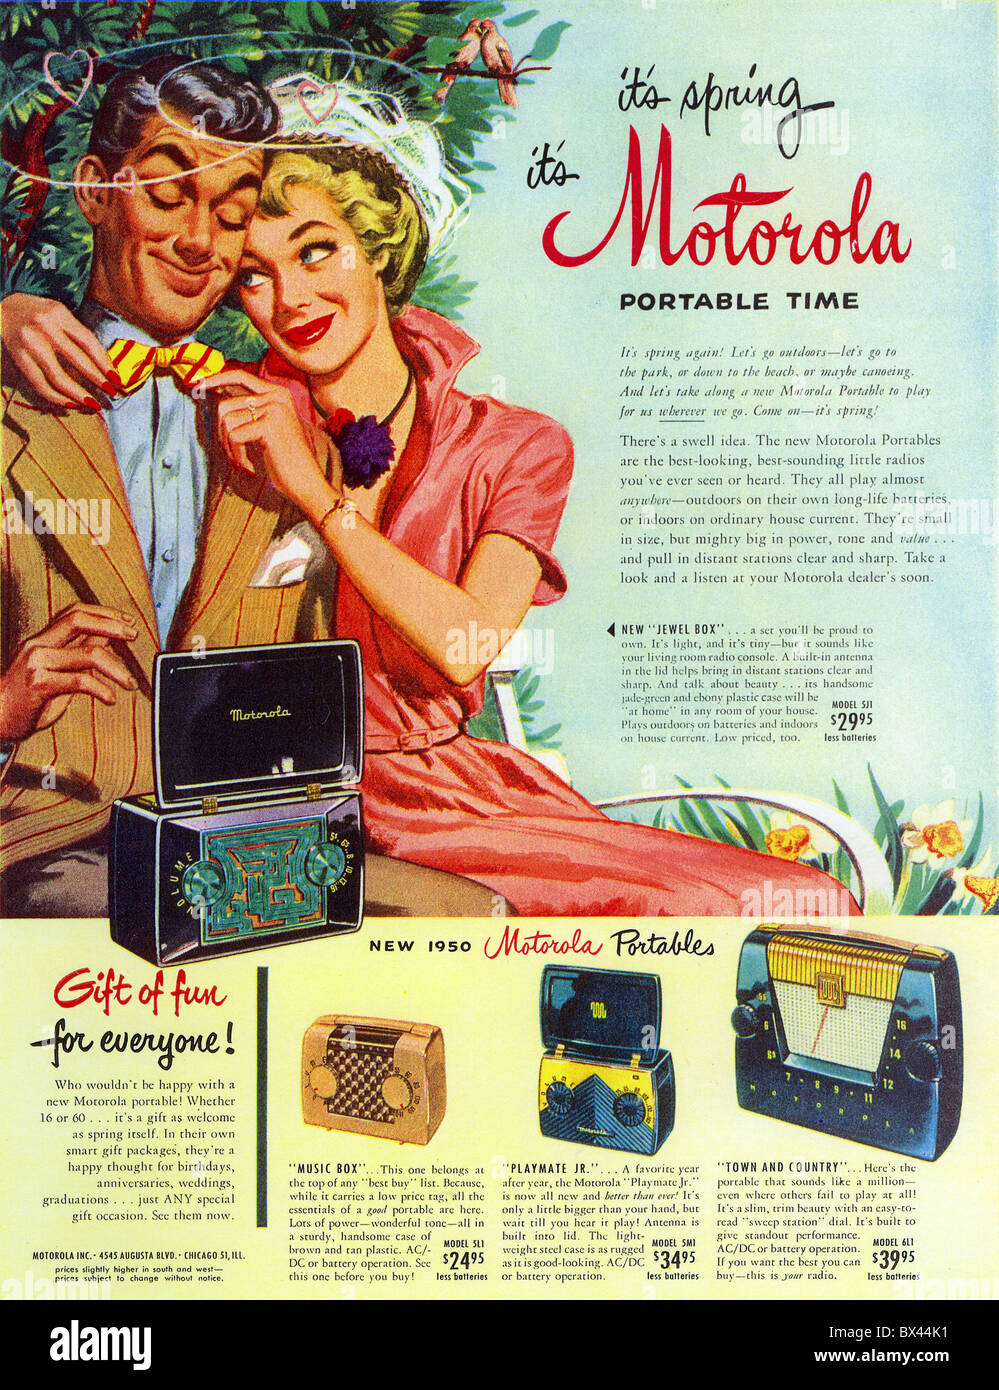 MOTOROLA Radio Advert In 1950